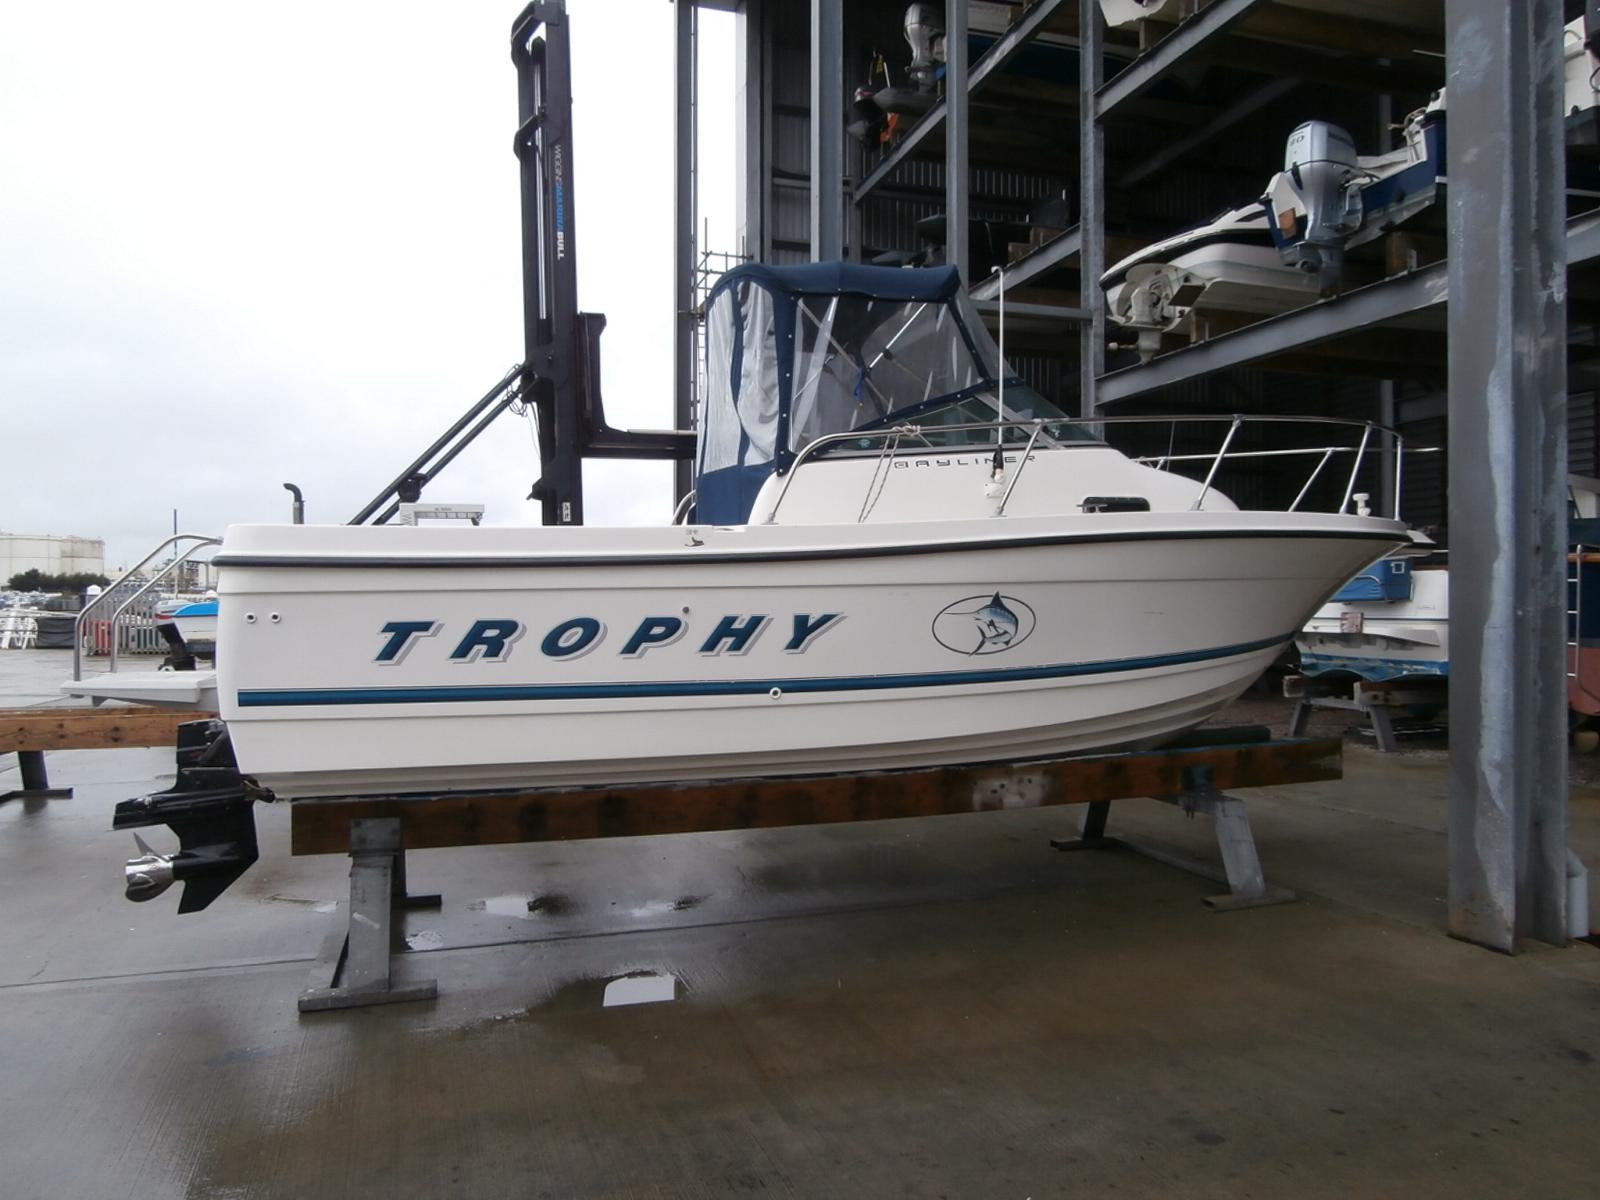 1999 Bayliner Trophy 2052 FD Power New And Used Boats For Sale